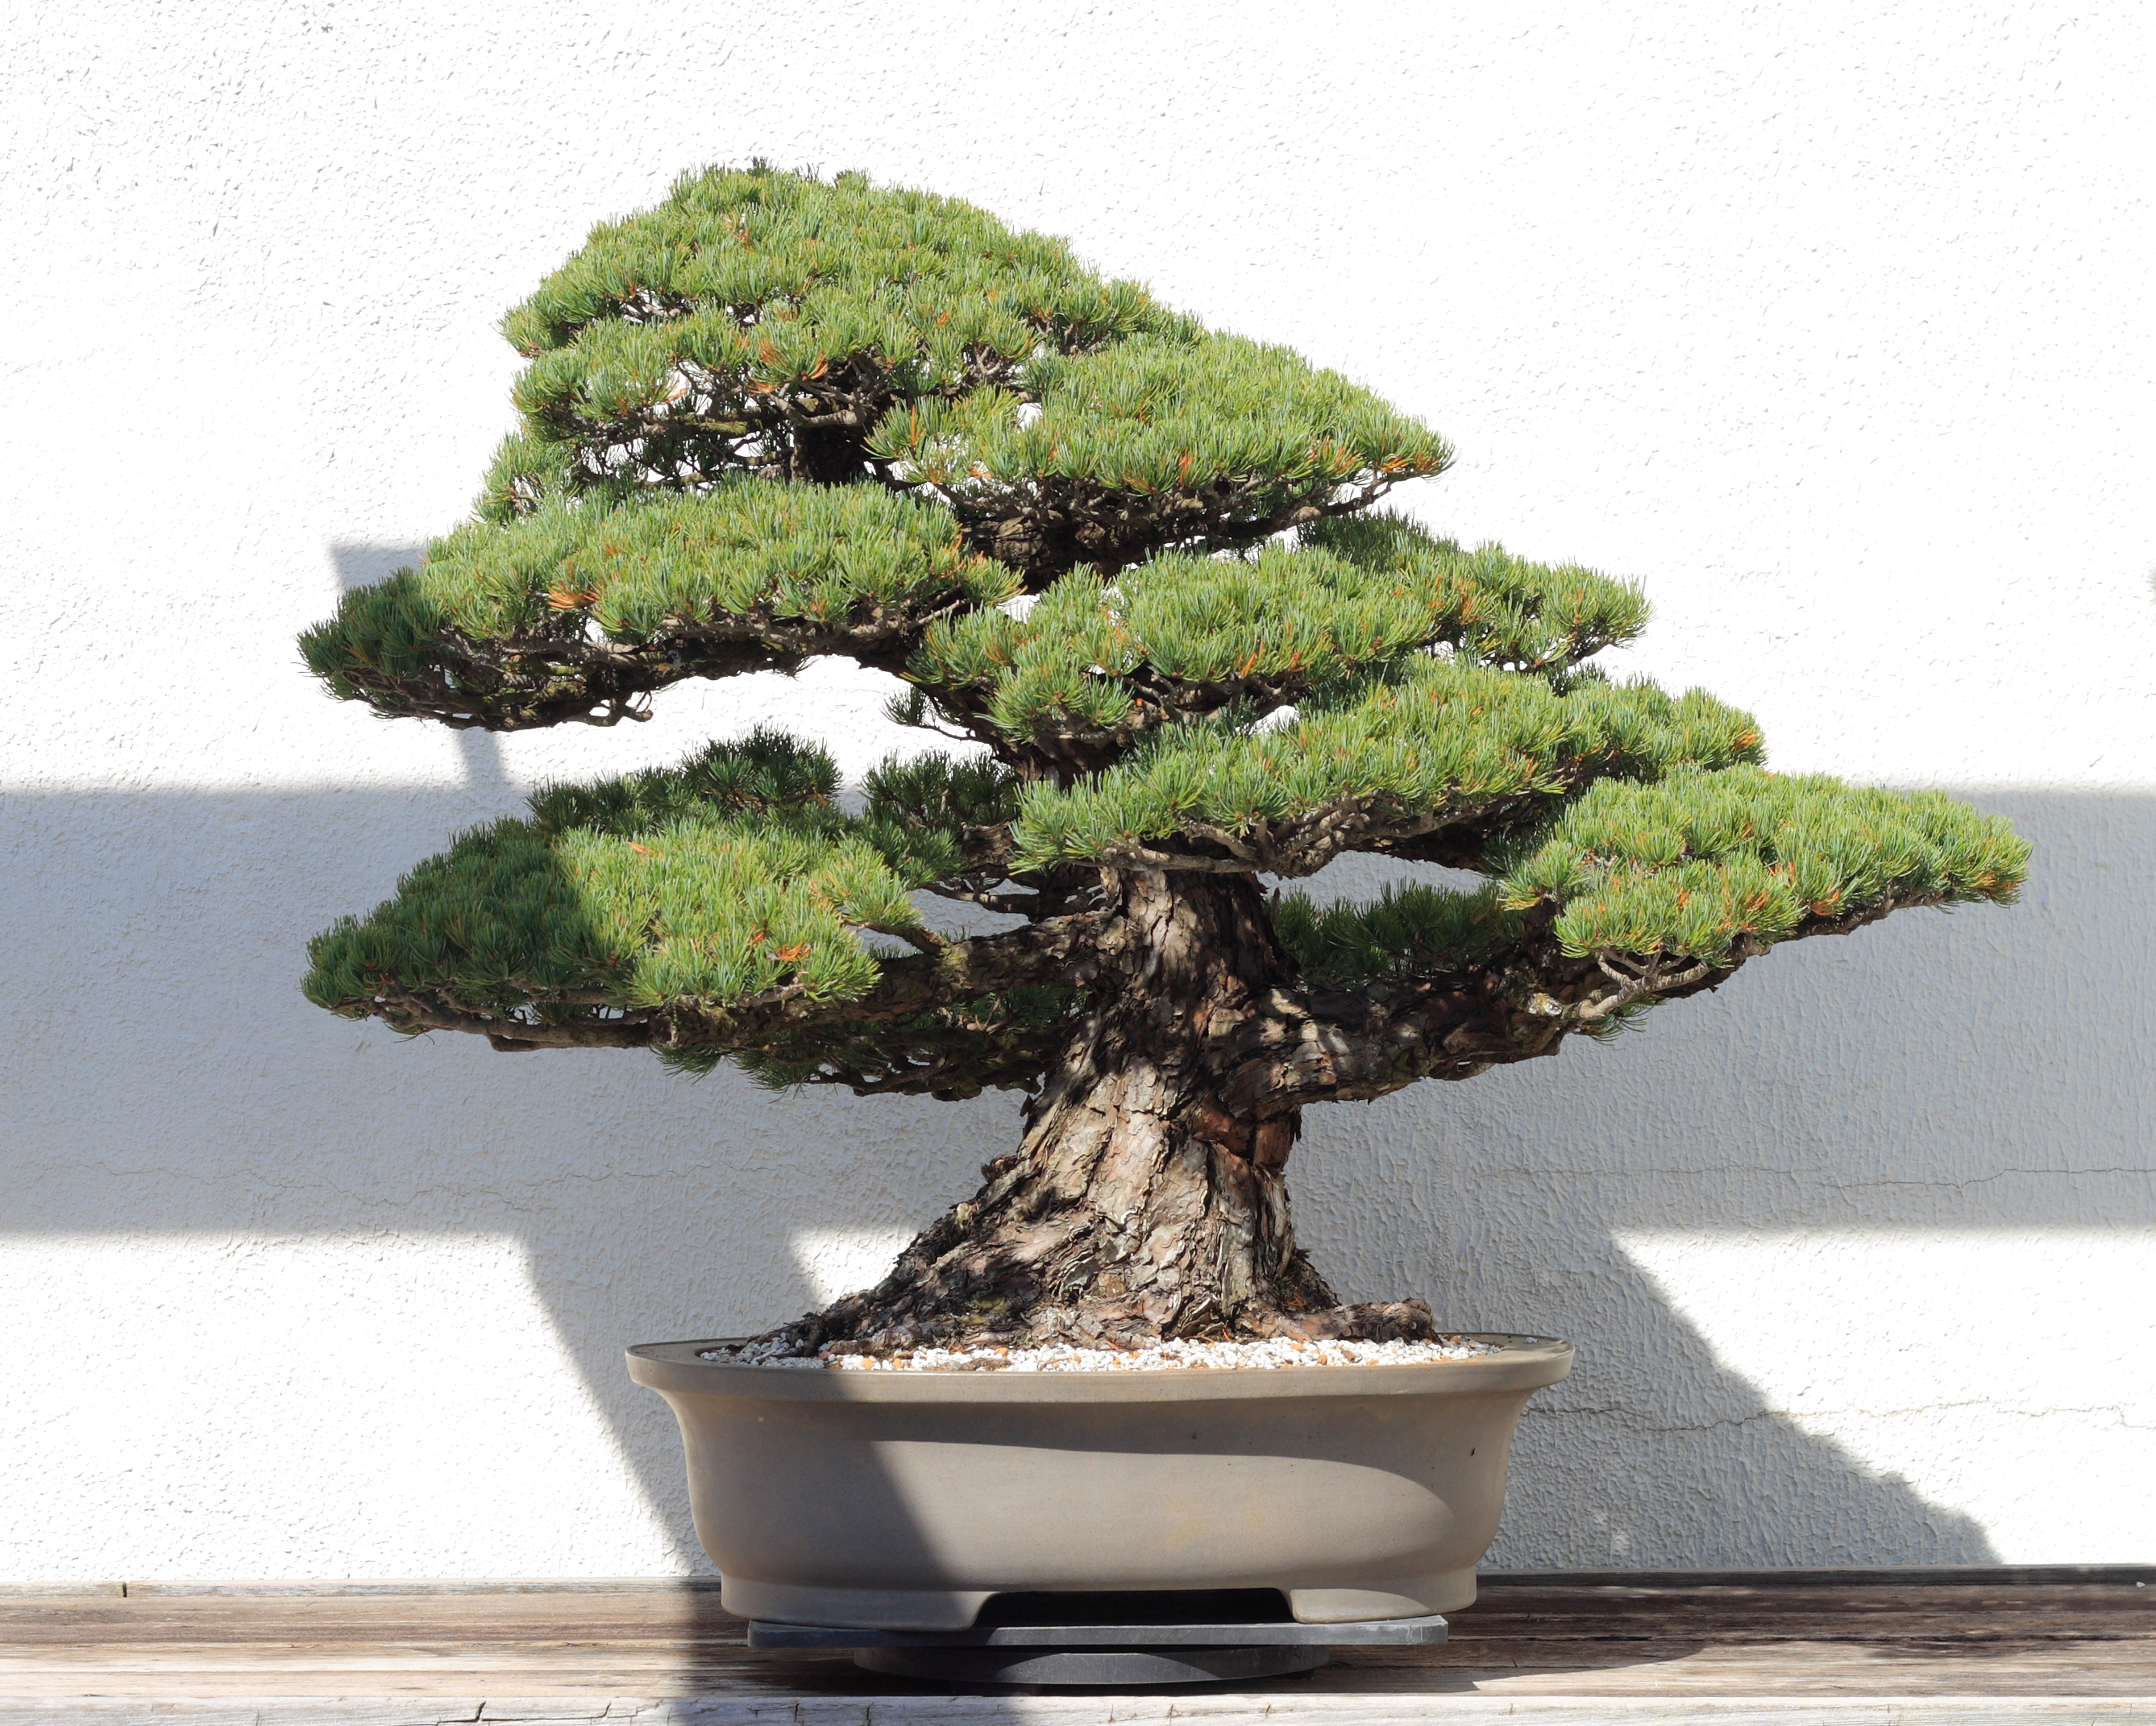 Japanese Black Pine Natural History